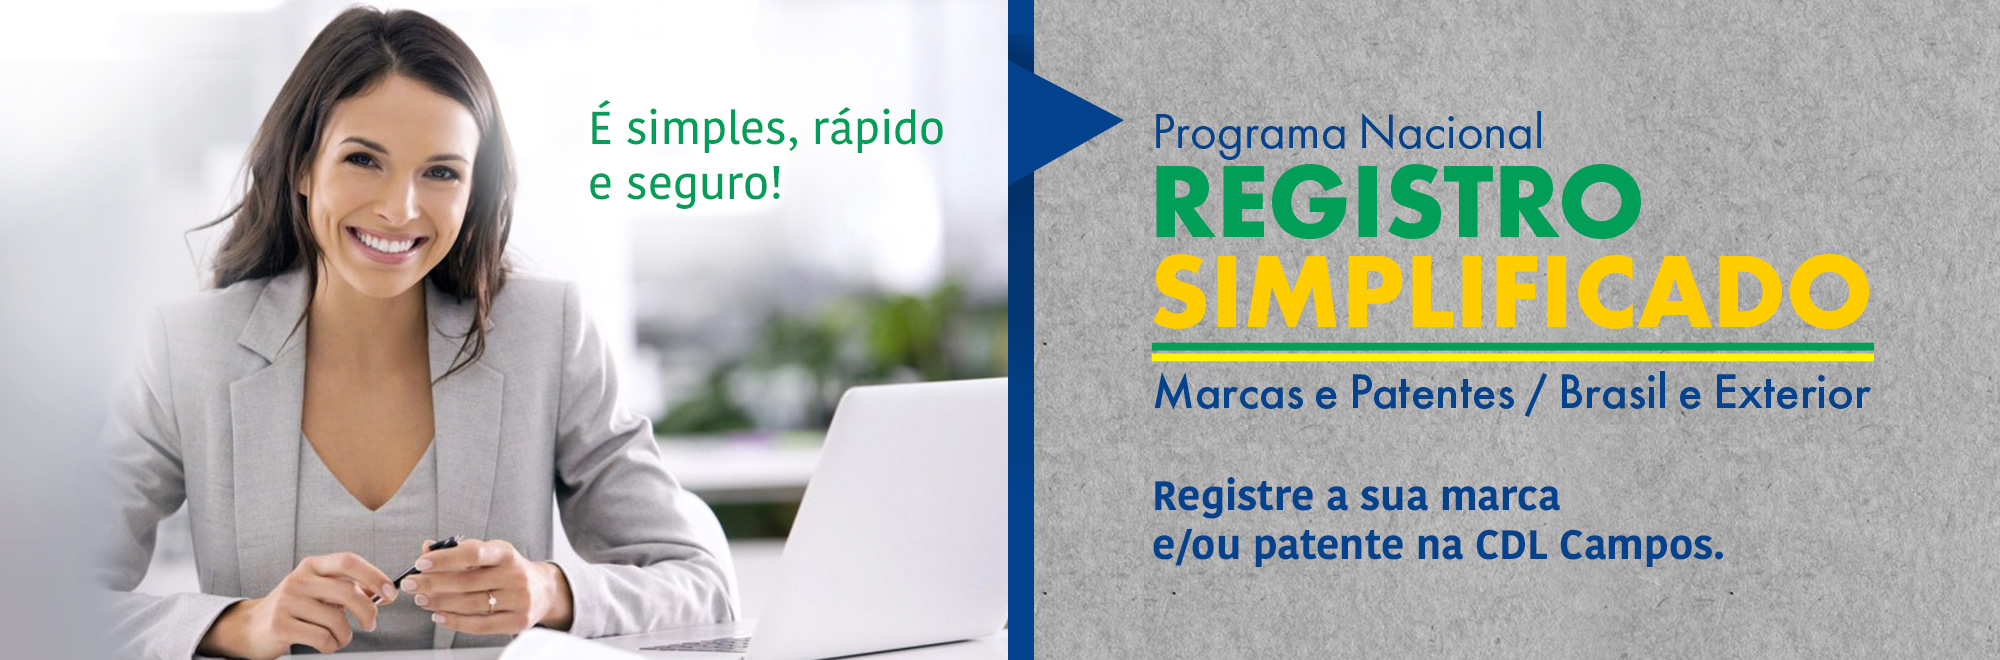 Registro Simplificado